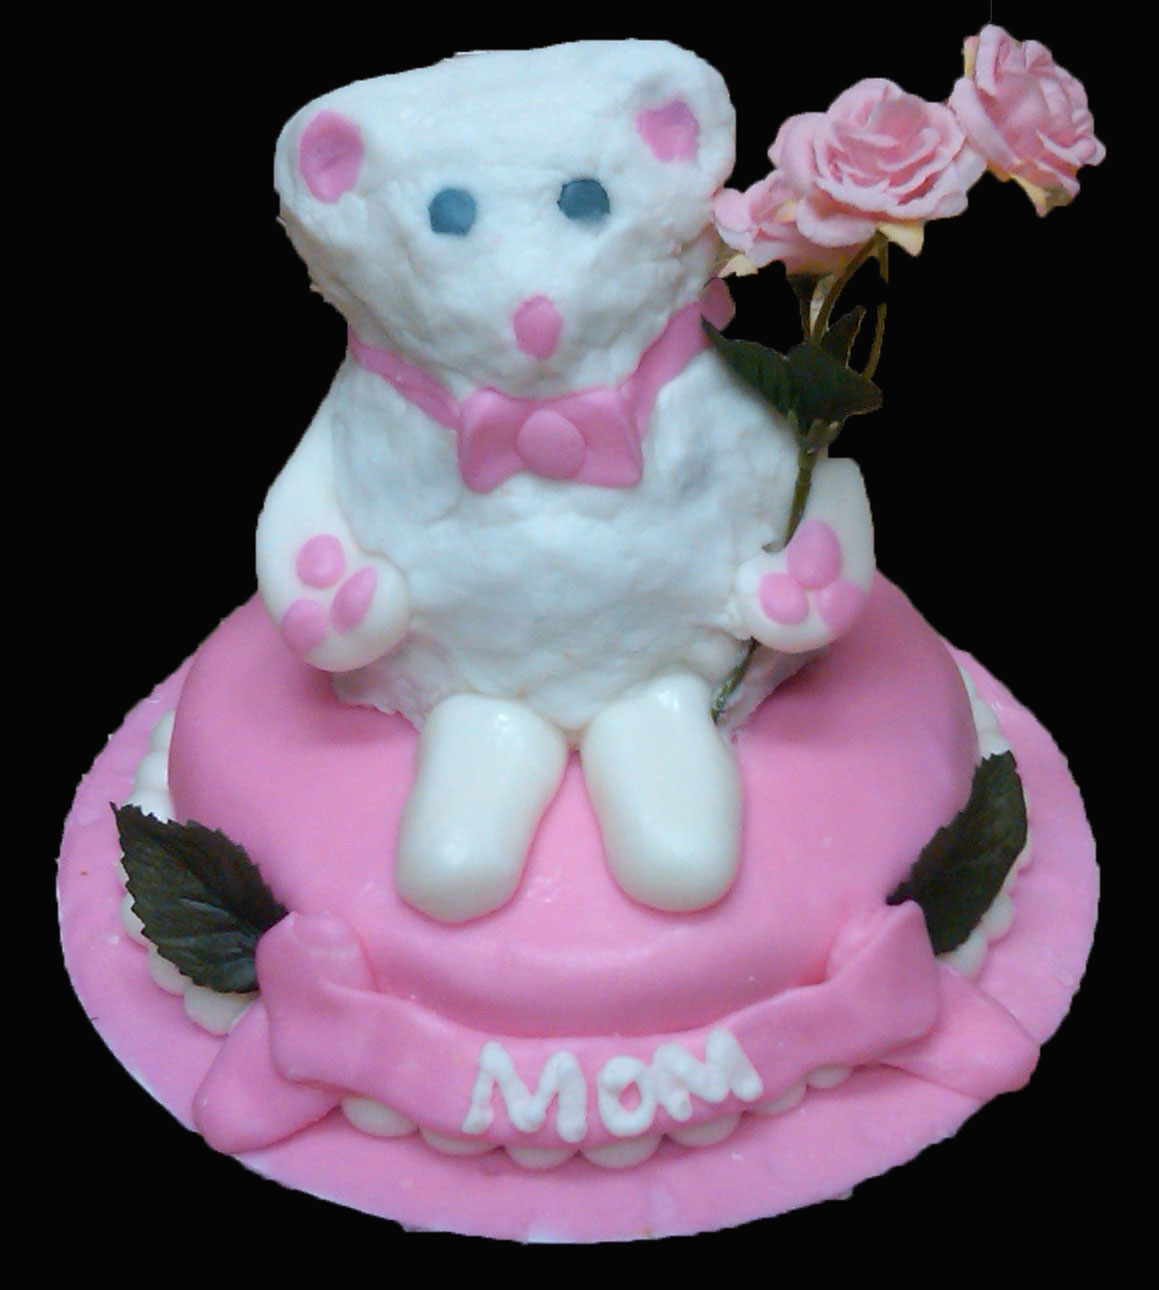 Cake Design Teddy Bear : Pin Teddy Bear Cupcakes a?a??a? Childrens Birthday Cakes ...